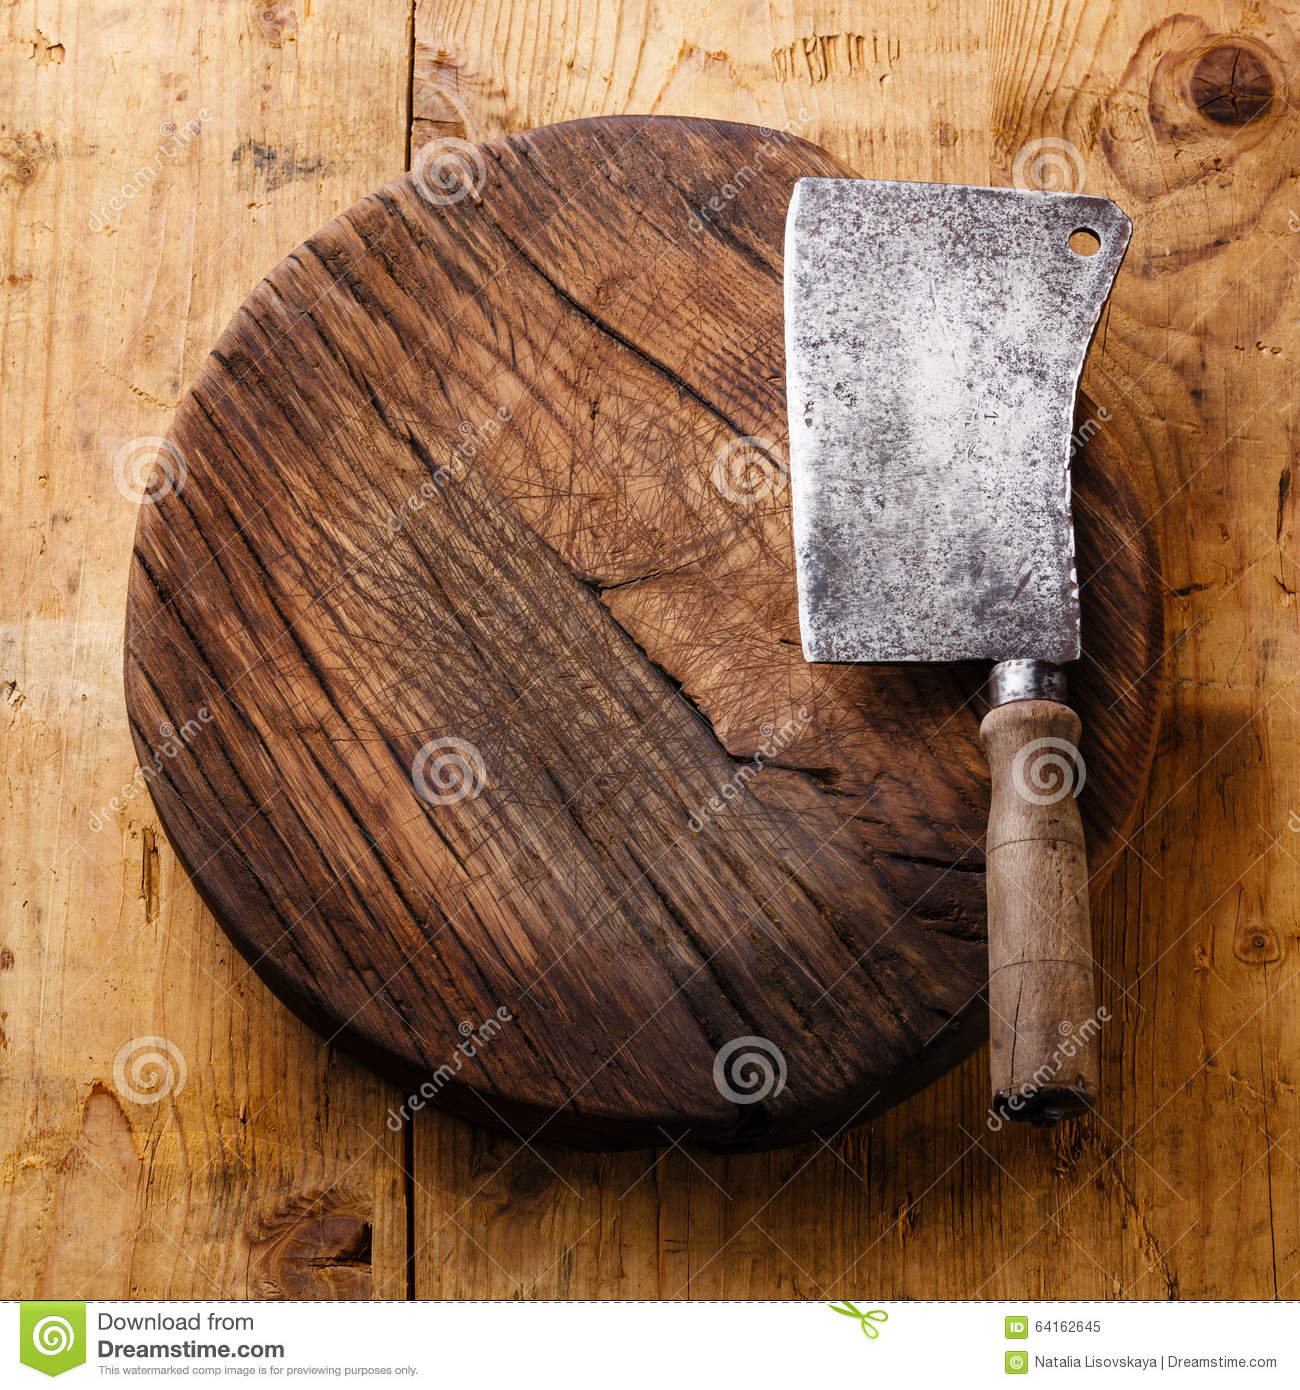 Chopping board block and Meat cleaver